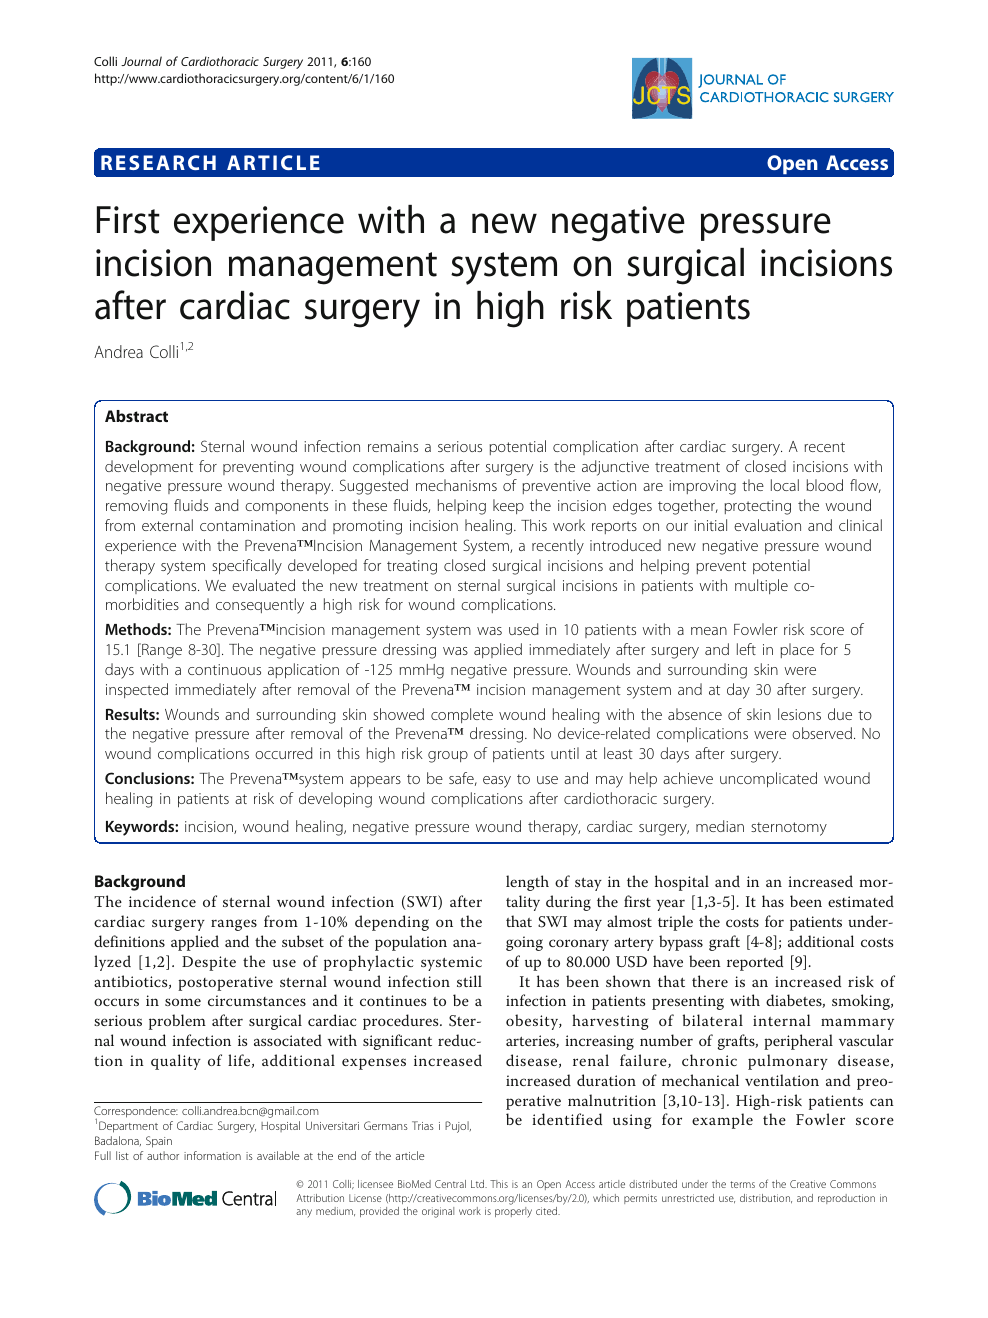 First Experience With A New Negative Pressure Incision Management System On Surgical Incisions After Cardiac Surgery In High Risk Patients Topic Of Research Paper In Clinical Medicine Download Scholarly Article Pdf